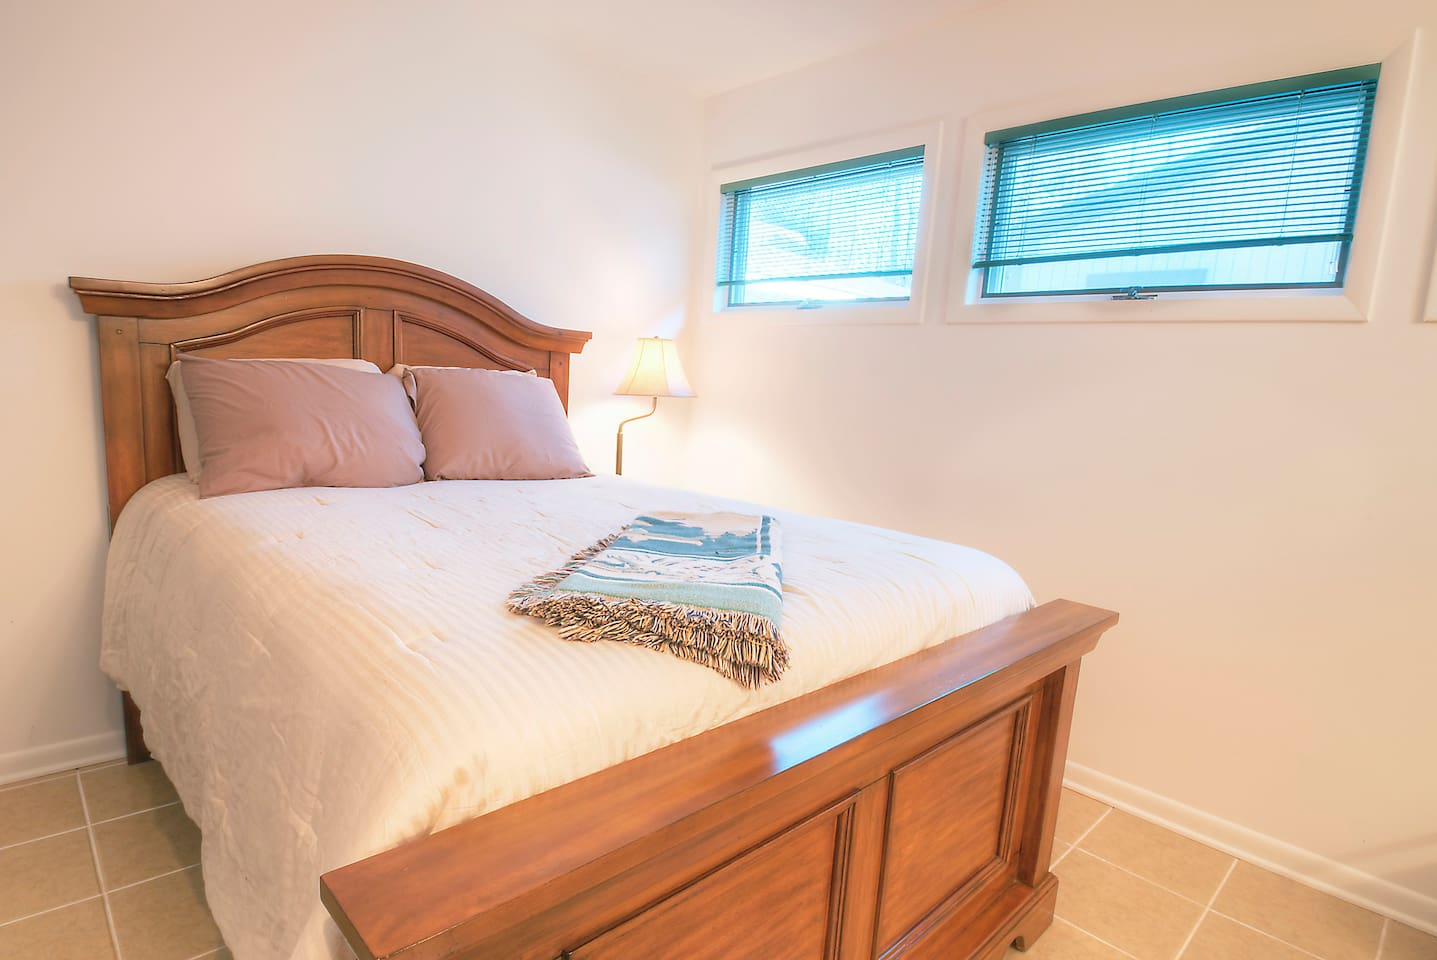 Master bedroom - oversize double bed